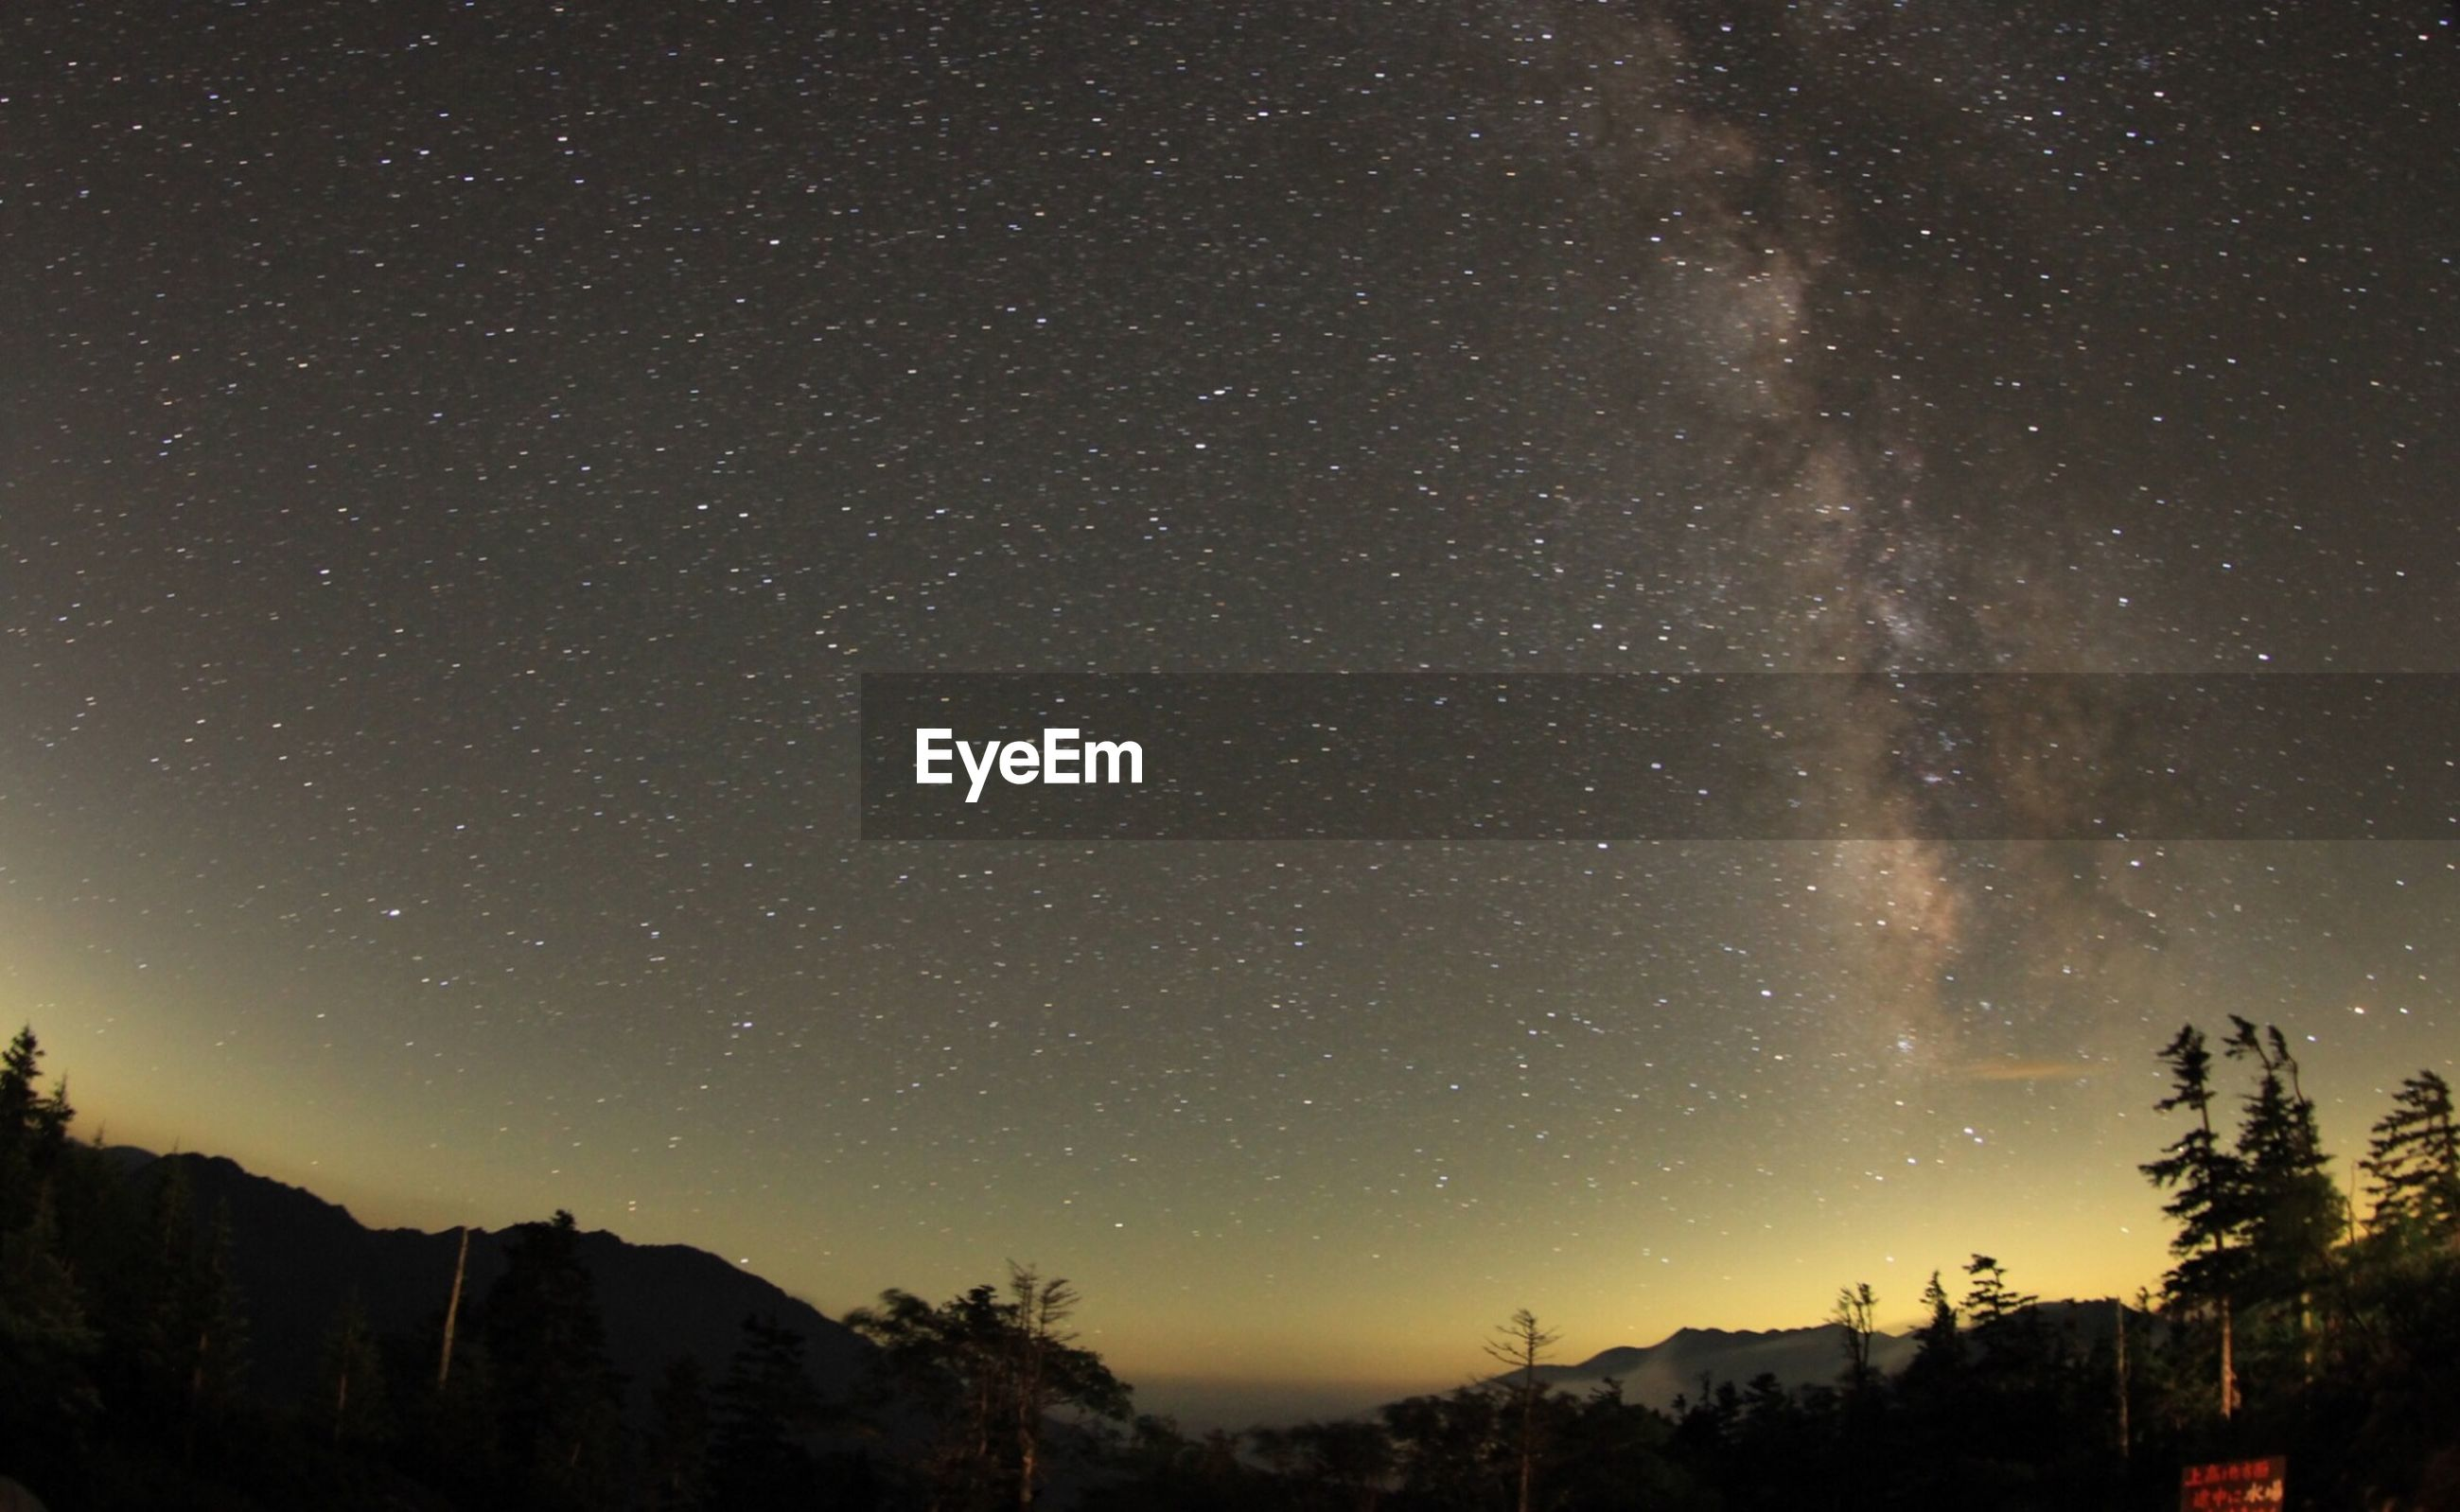 Tranquil view of stars glowing in sky